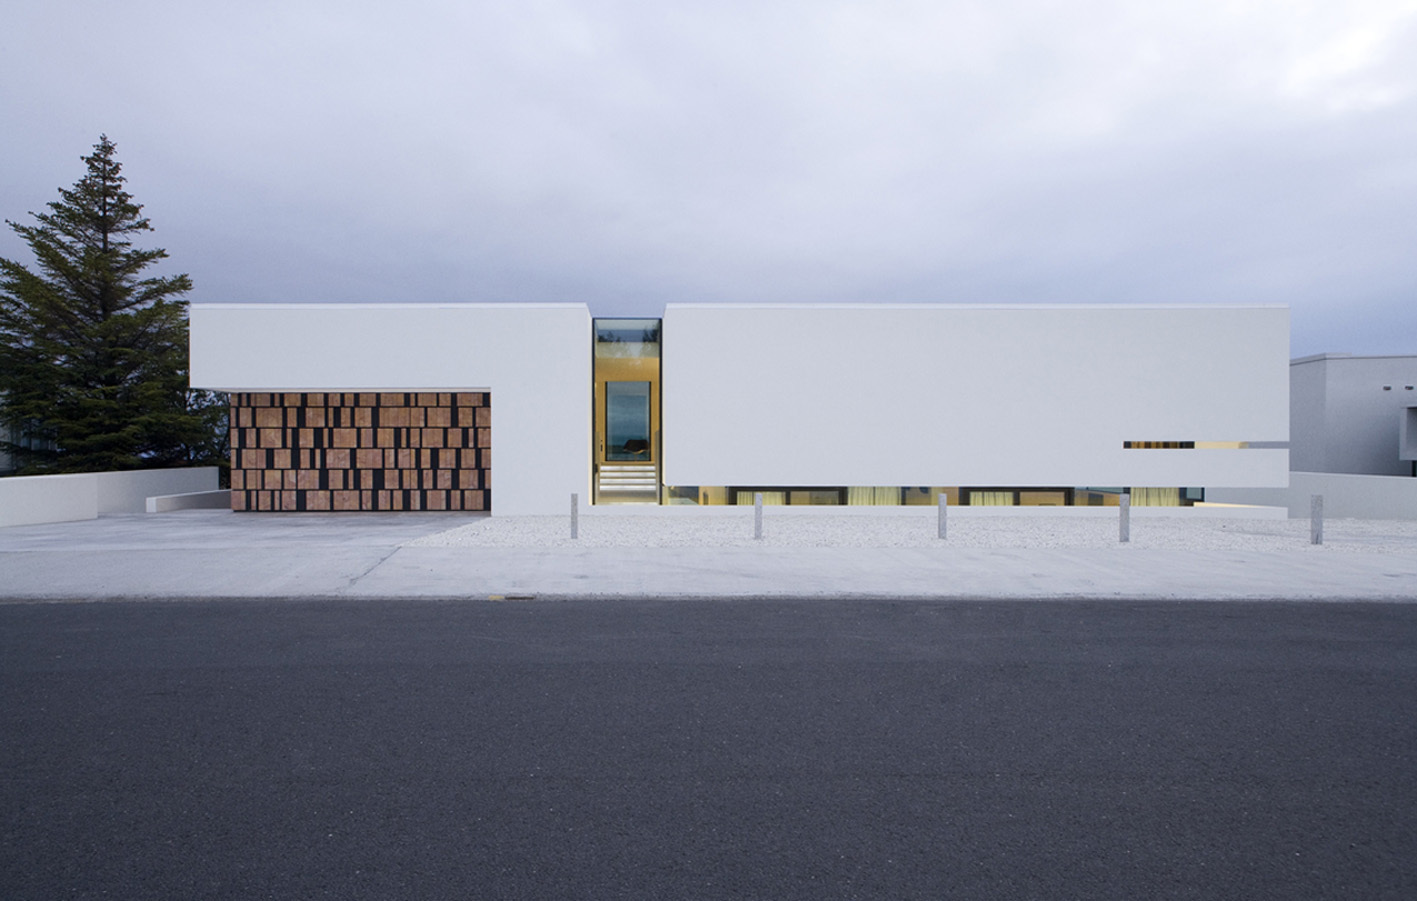 perfect clean facade Monolithic Mass Empowered by Simplicity - B25 House by PK Arkitektar homesthetics 1 (0)